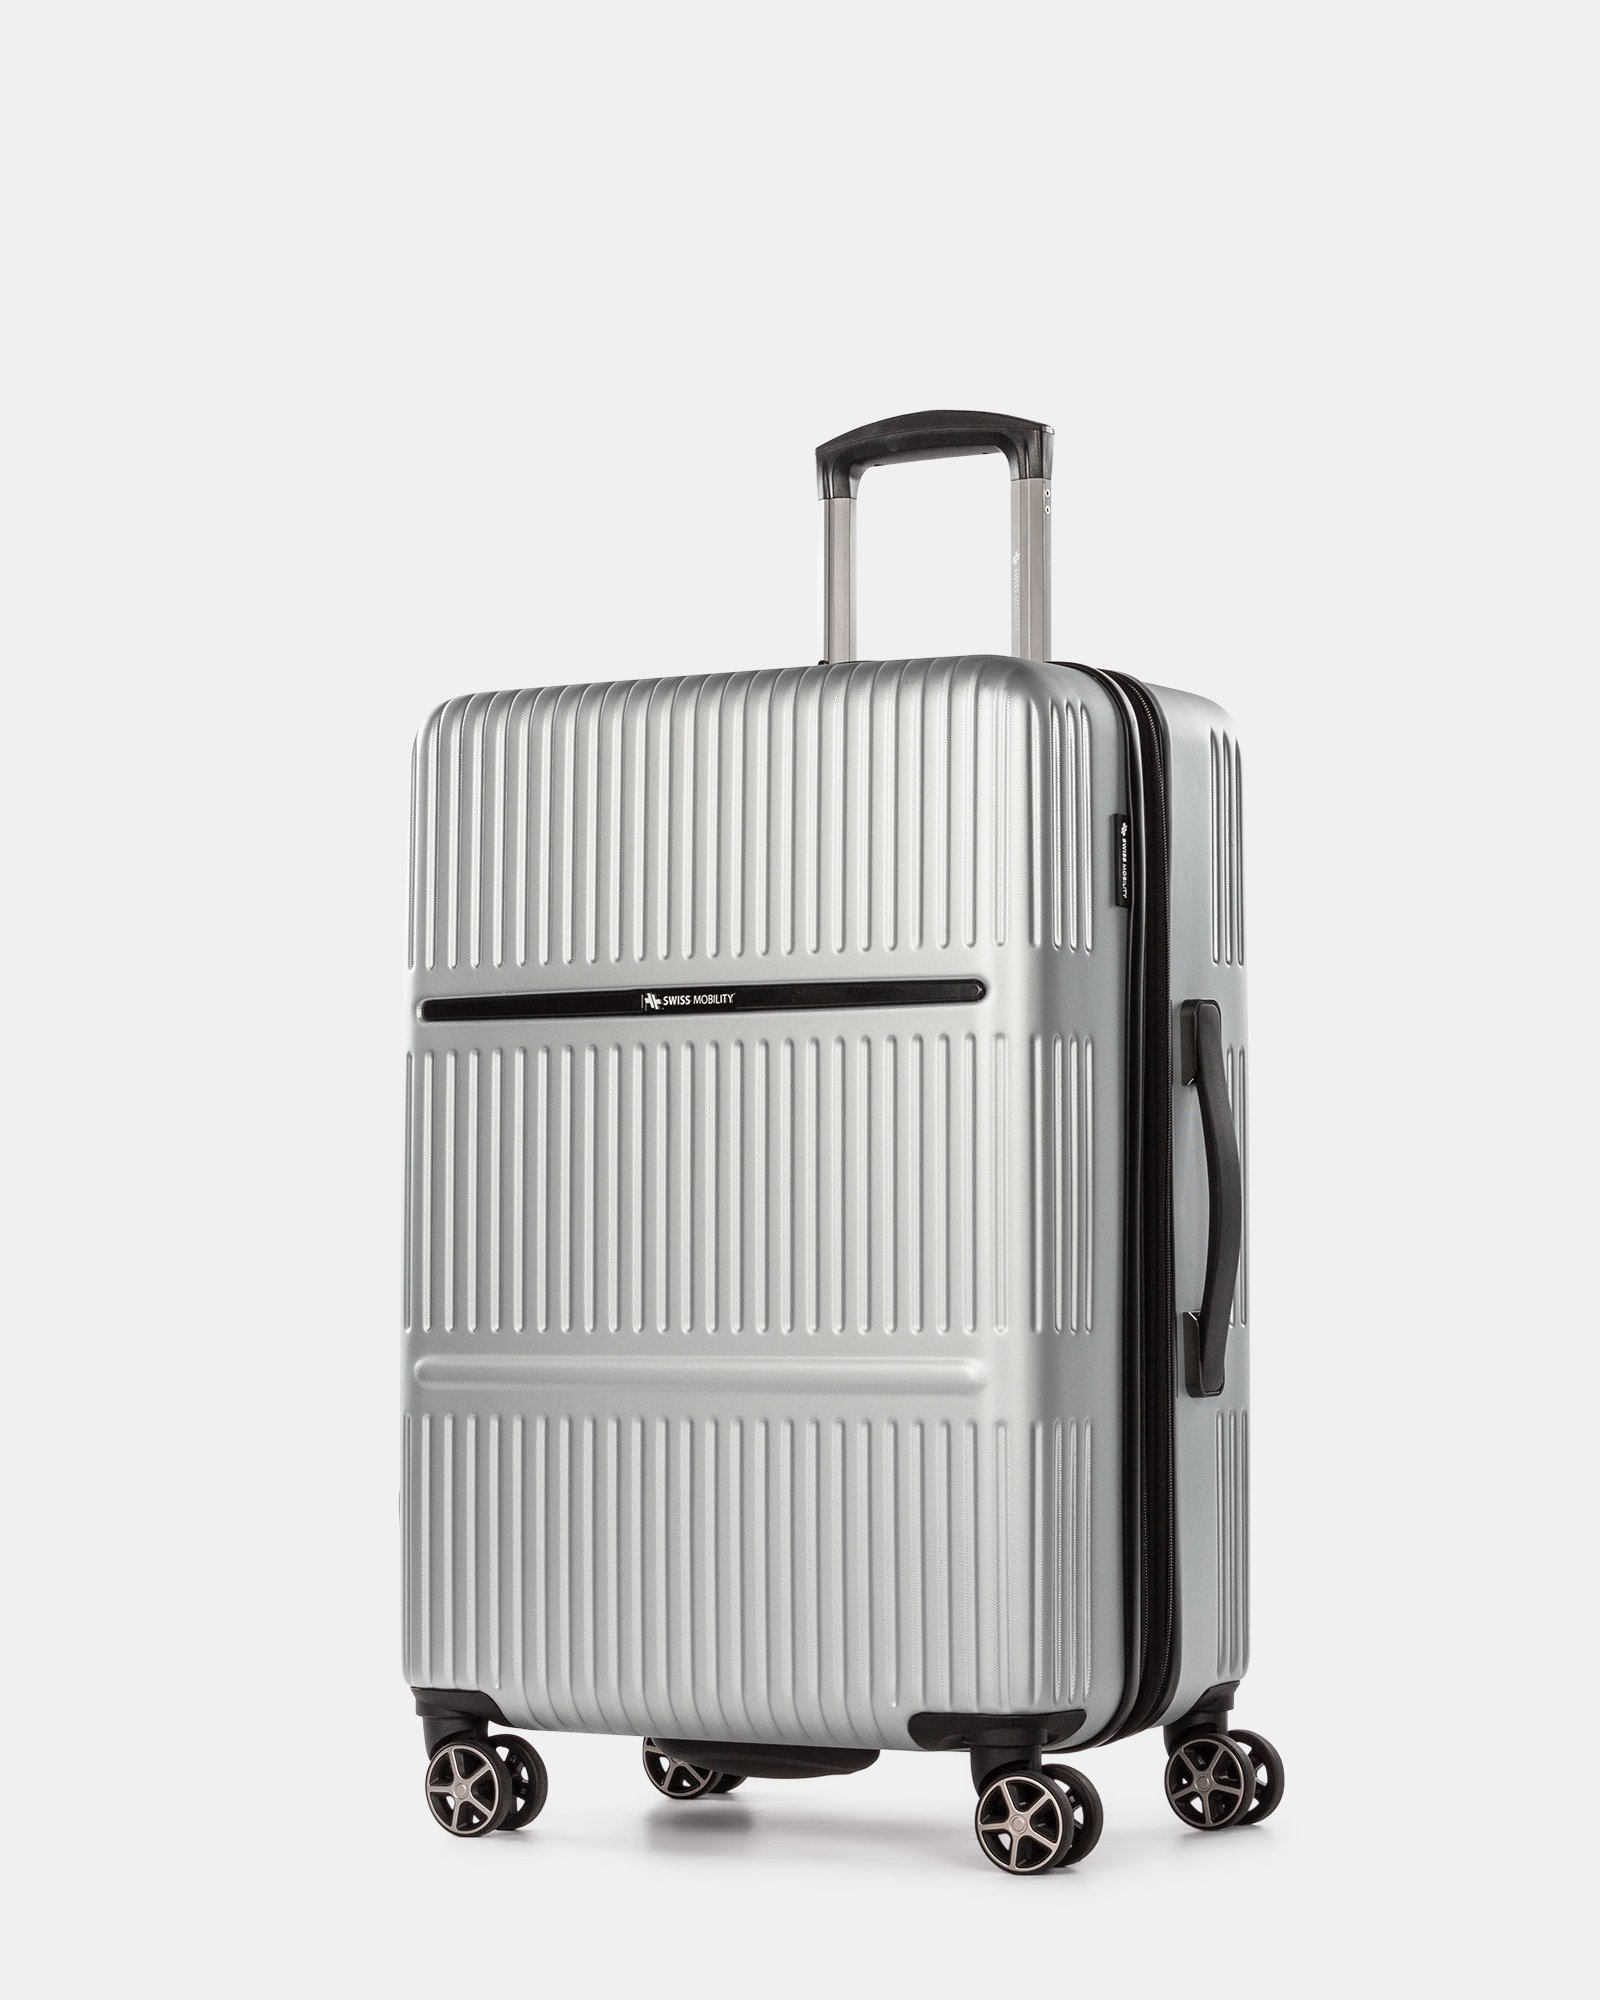 Highway-Hardside Luggage 24'' - Swiss Mobility - Zoom